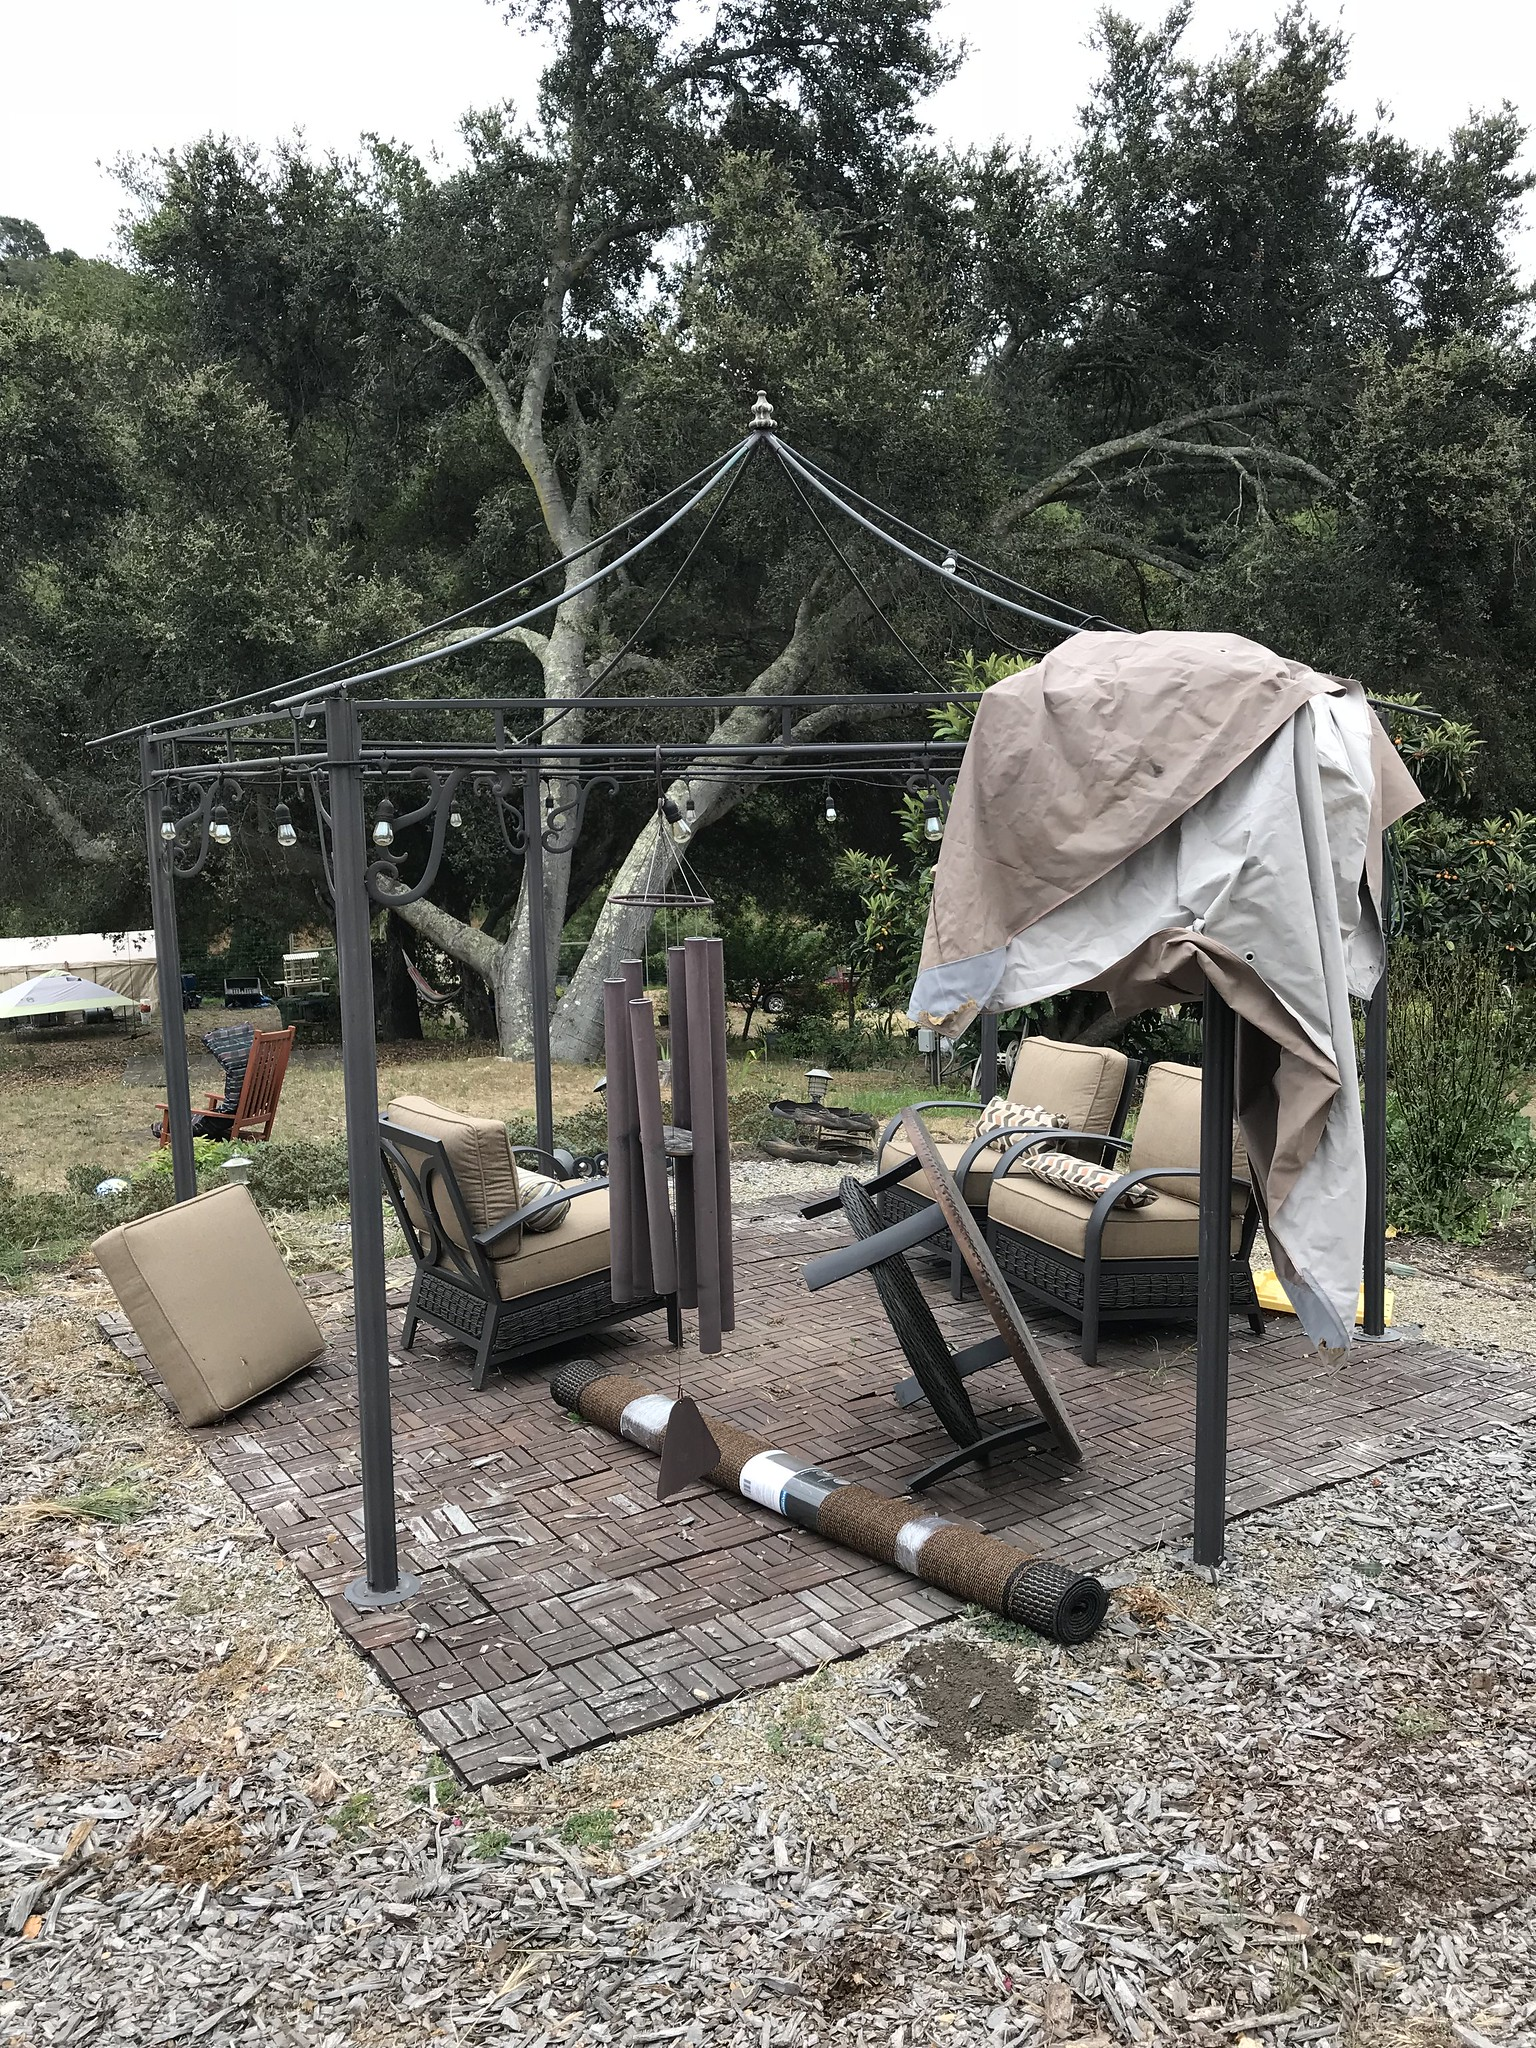 Putting the canopy on the gazebo